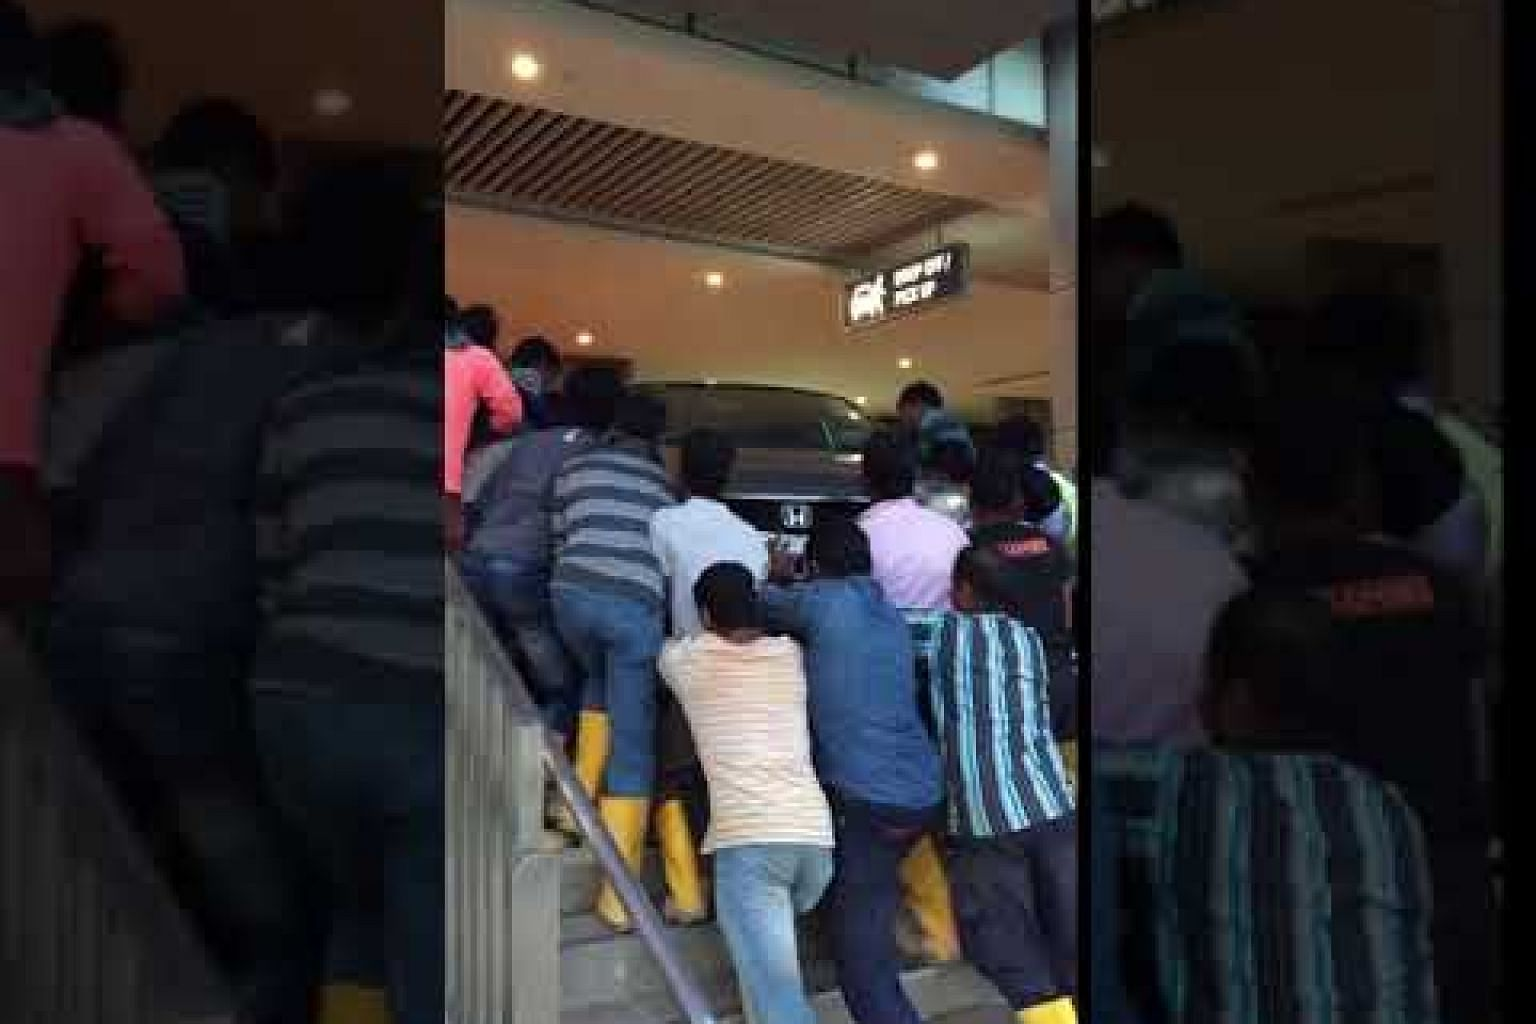 Over 10 foreign workers help push stranded car back on road